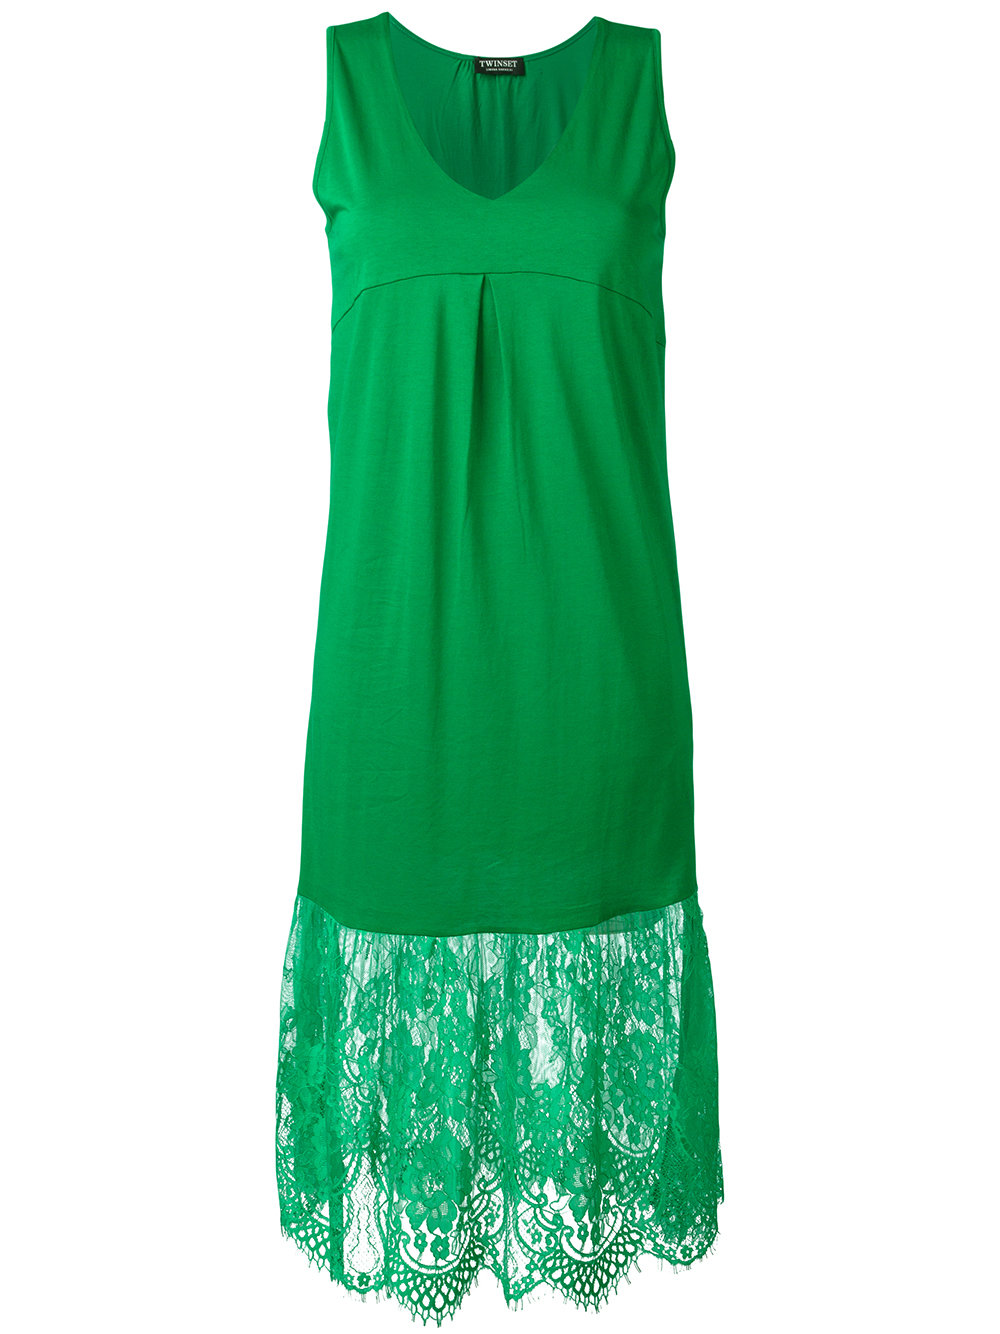 Twin set in the outlet twin-set lace detailing dress 822 grass green women clothing cocktail u0026  party dresses, MTJBLZN